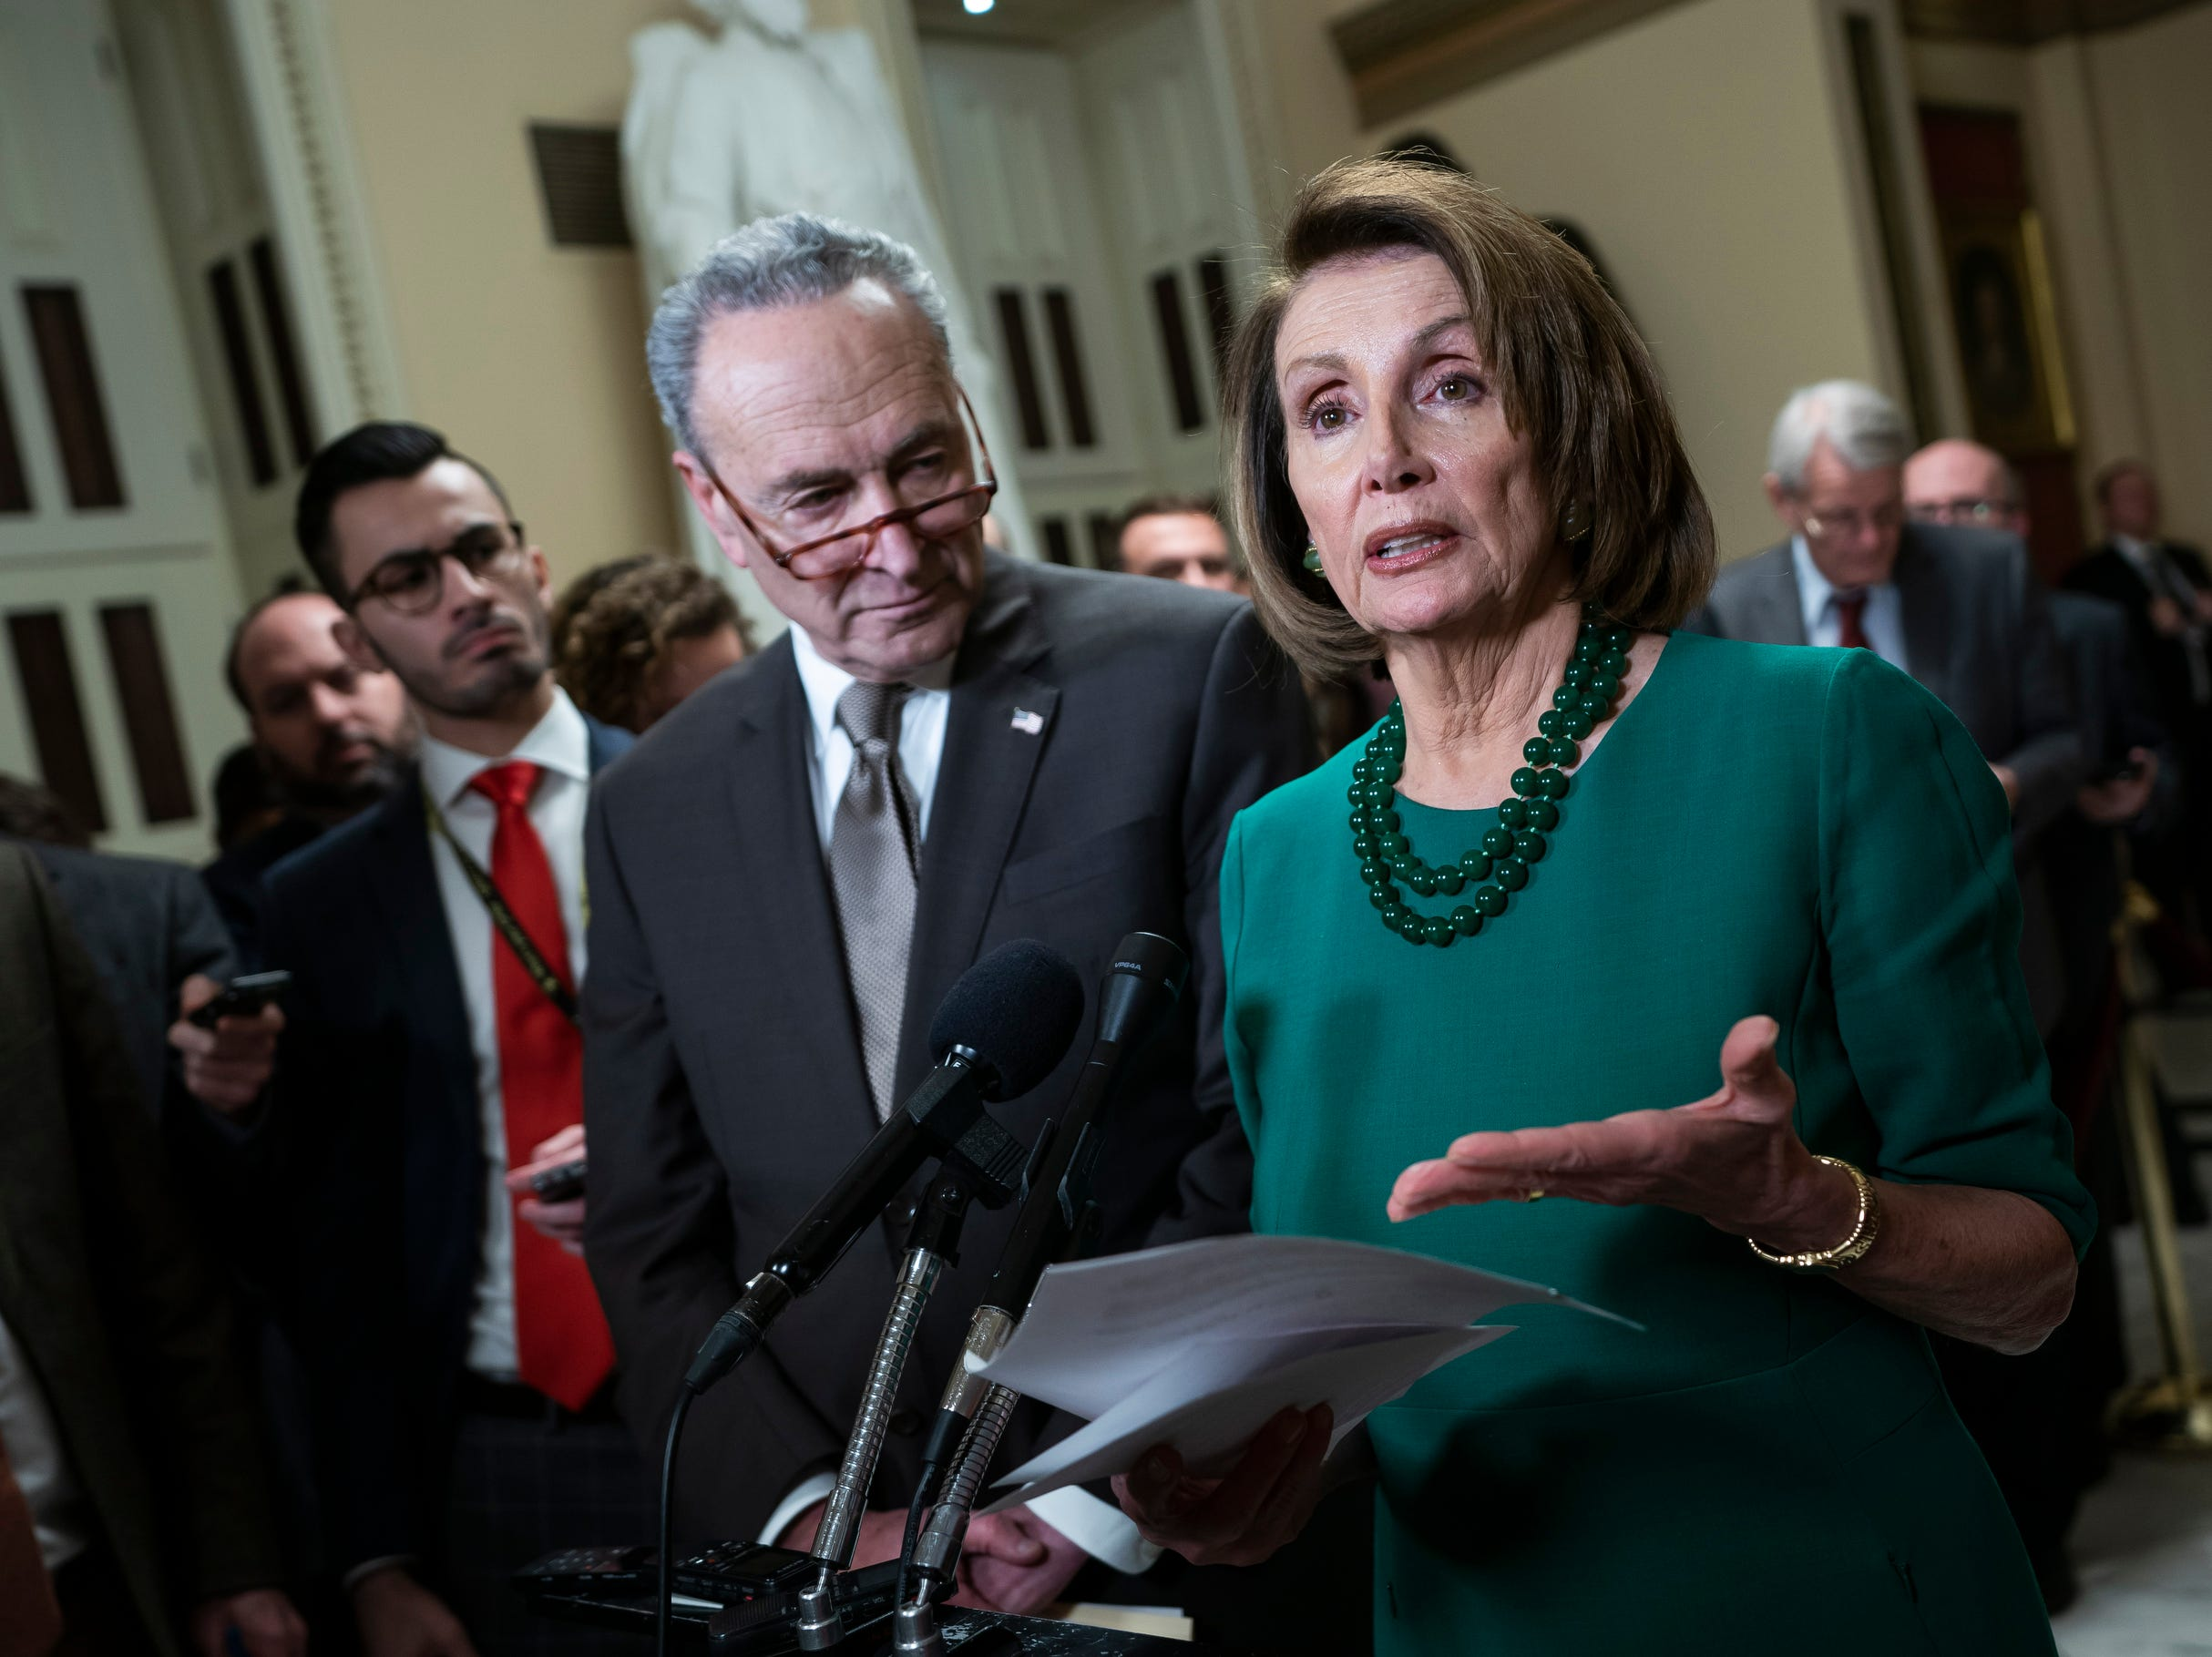 Democratic House Minority Leader Nancy Pelosi (R) and Democratic Senate Minority Leader Chuck Schumer (C) speak to the media, Thursday, as lawmakers prepare to vote on a new budget resolution to avert a government shutdown.